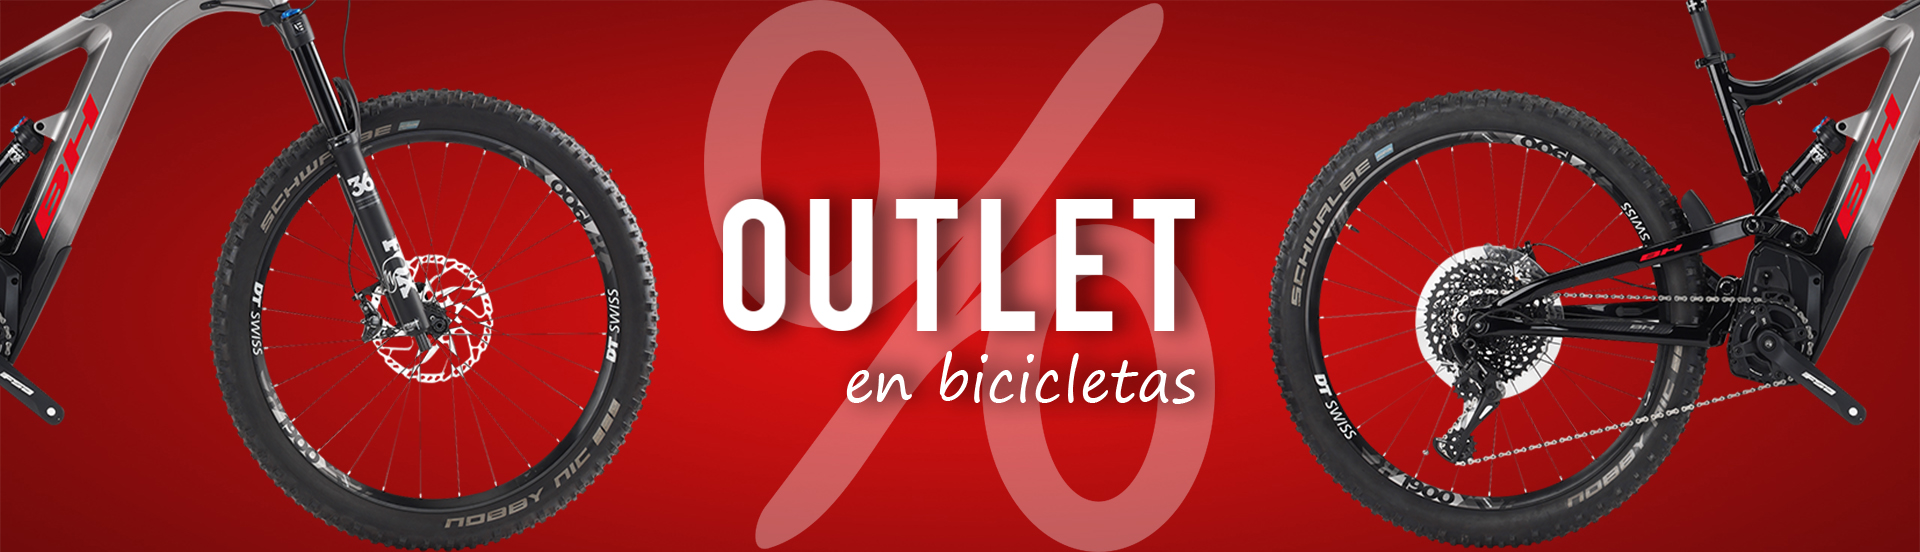 OUTLET BICICLETAS